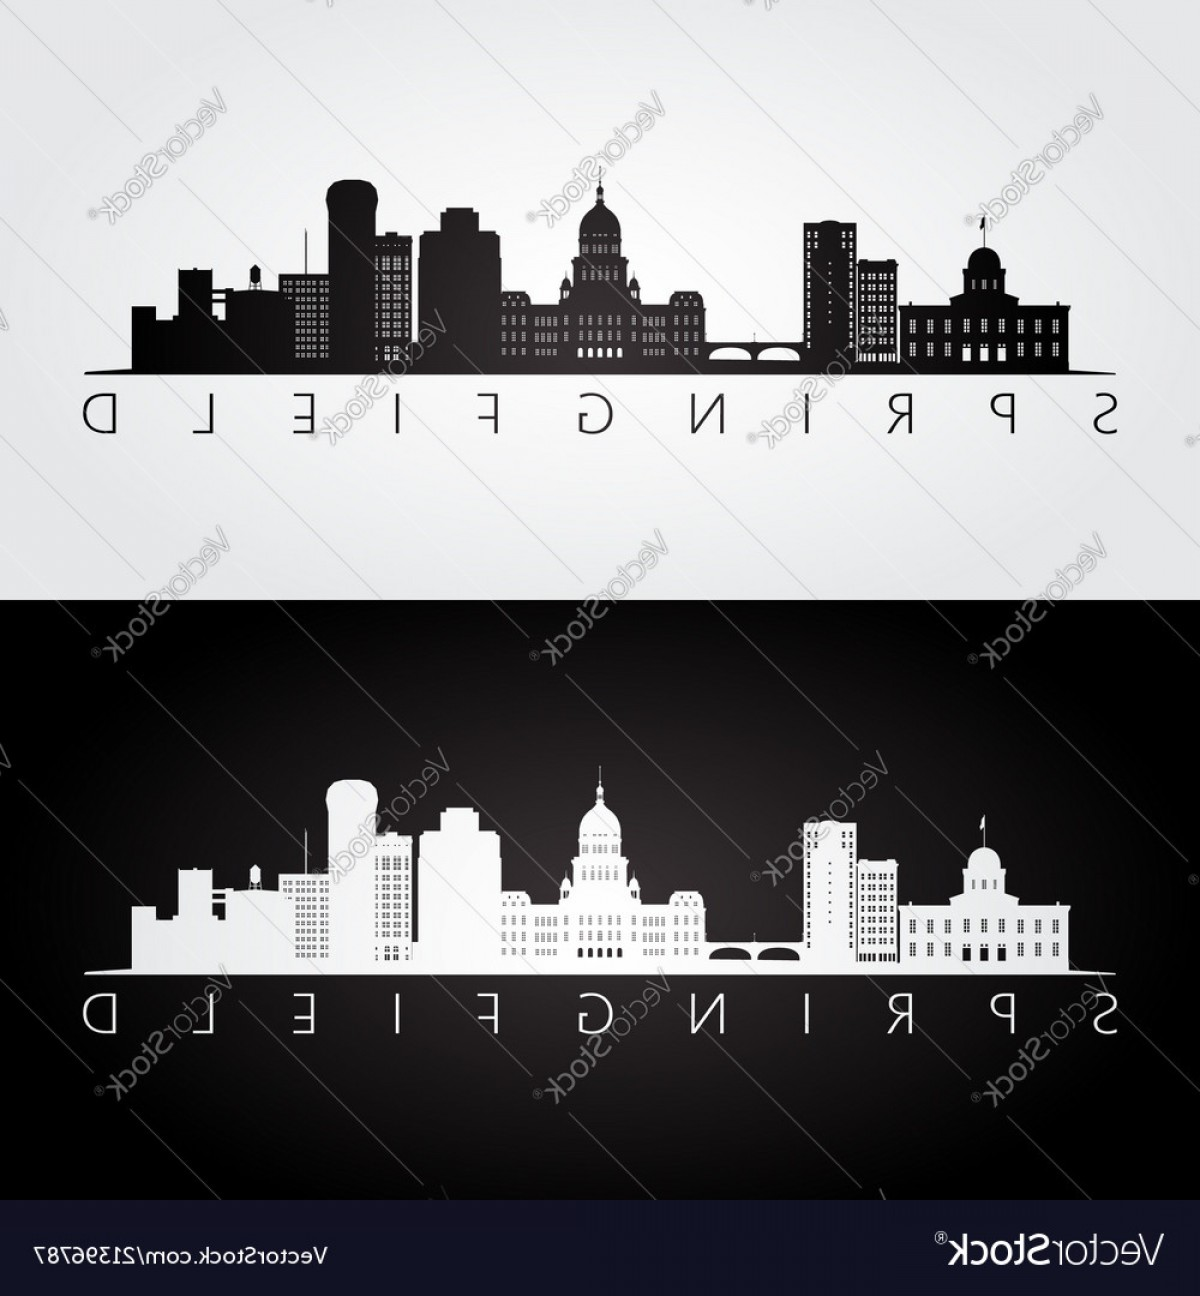 Wicked Boston Skyline Silhouette Vector: Springfield Usa Skyline And Landmarks Silhouette Vector